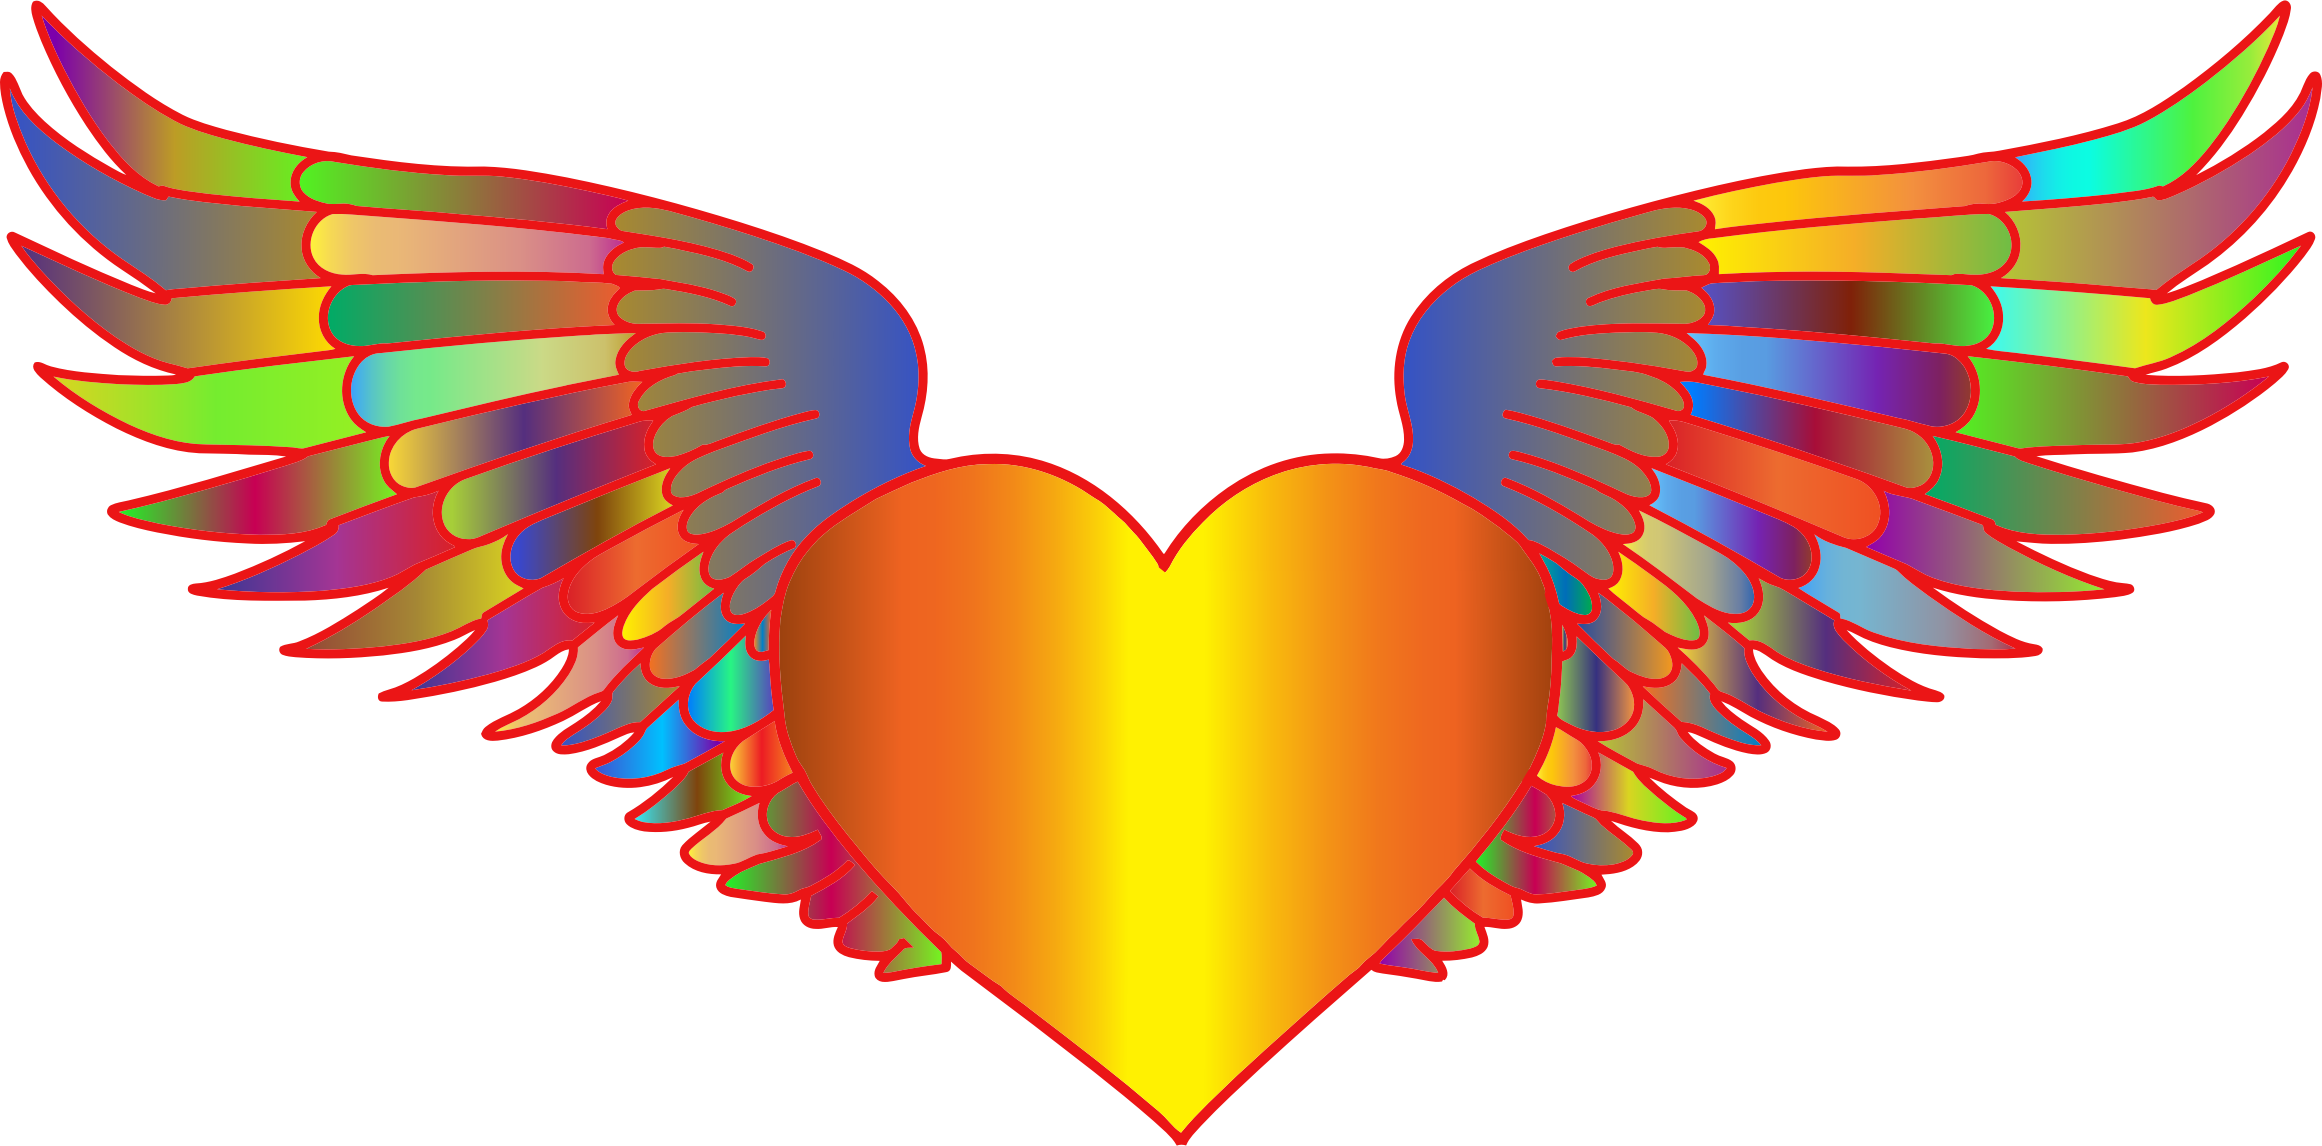 Wing clipart heart. Prismatic flying big image